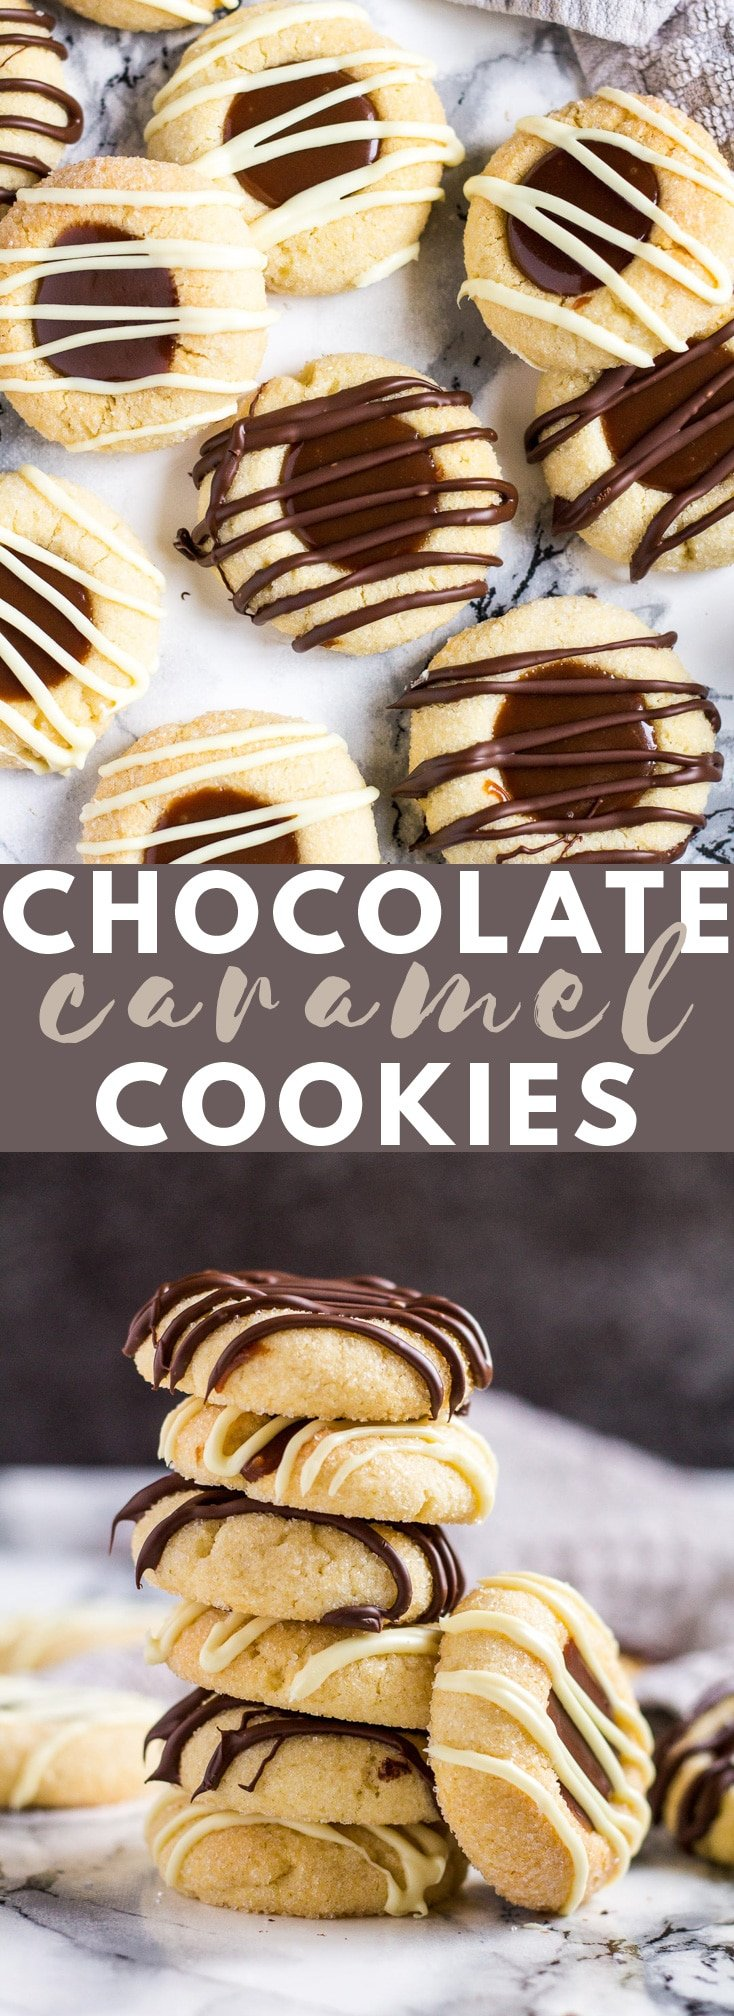 Chocolate Caramel Thumbprint Cookies - Deliciously soft, melt-in-your-mouth vanilla thumbprint cookies filled with homemade chocolate caramel sauce, and drizzled with melted chocolate! #chocolate #caramel #thumbprint #cookies #recipe